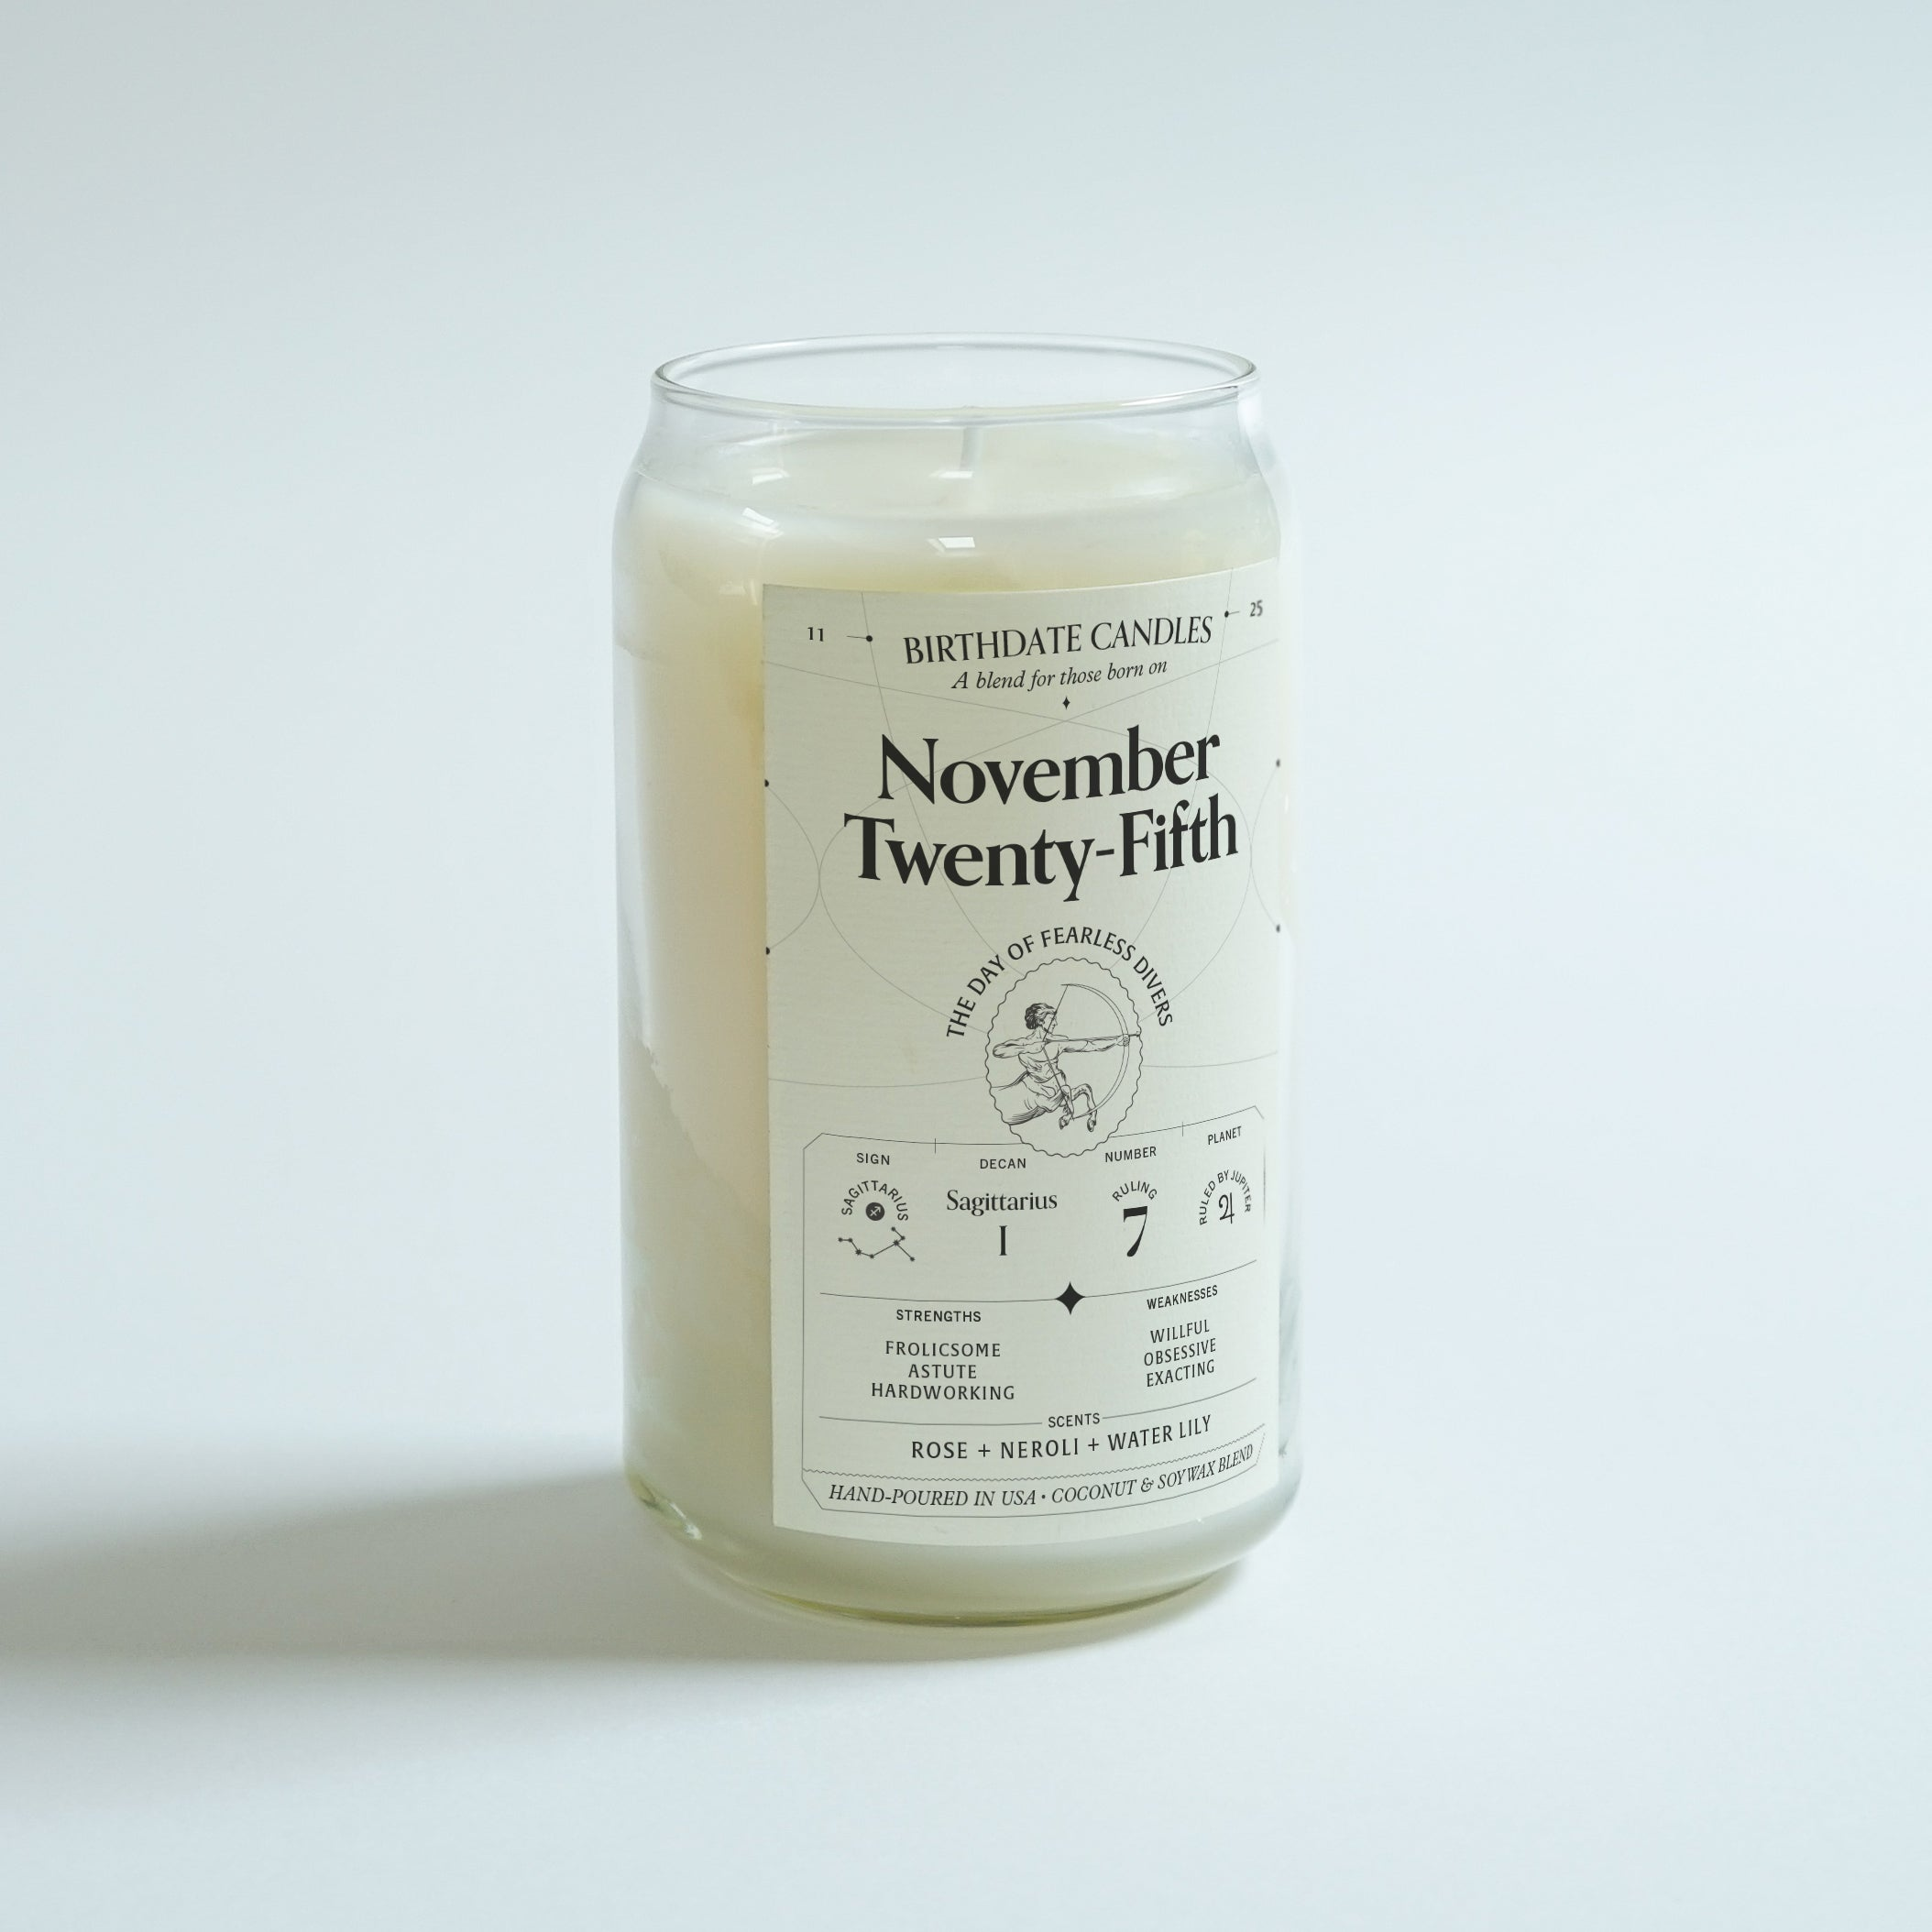 The November Twenty-Fifth Candle